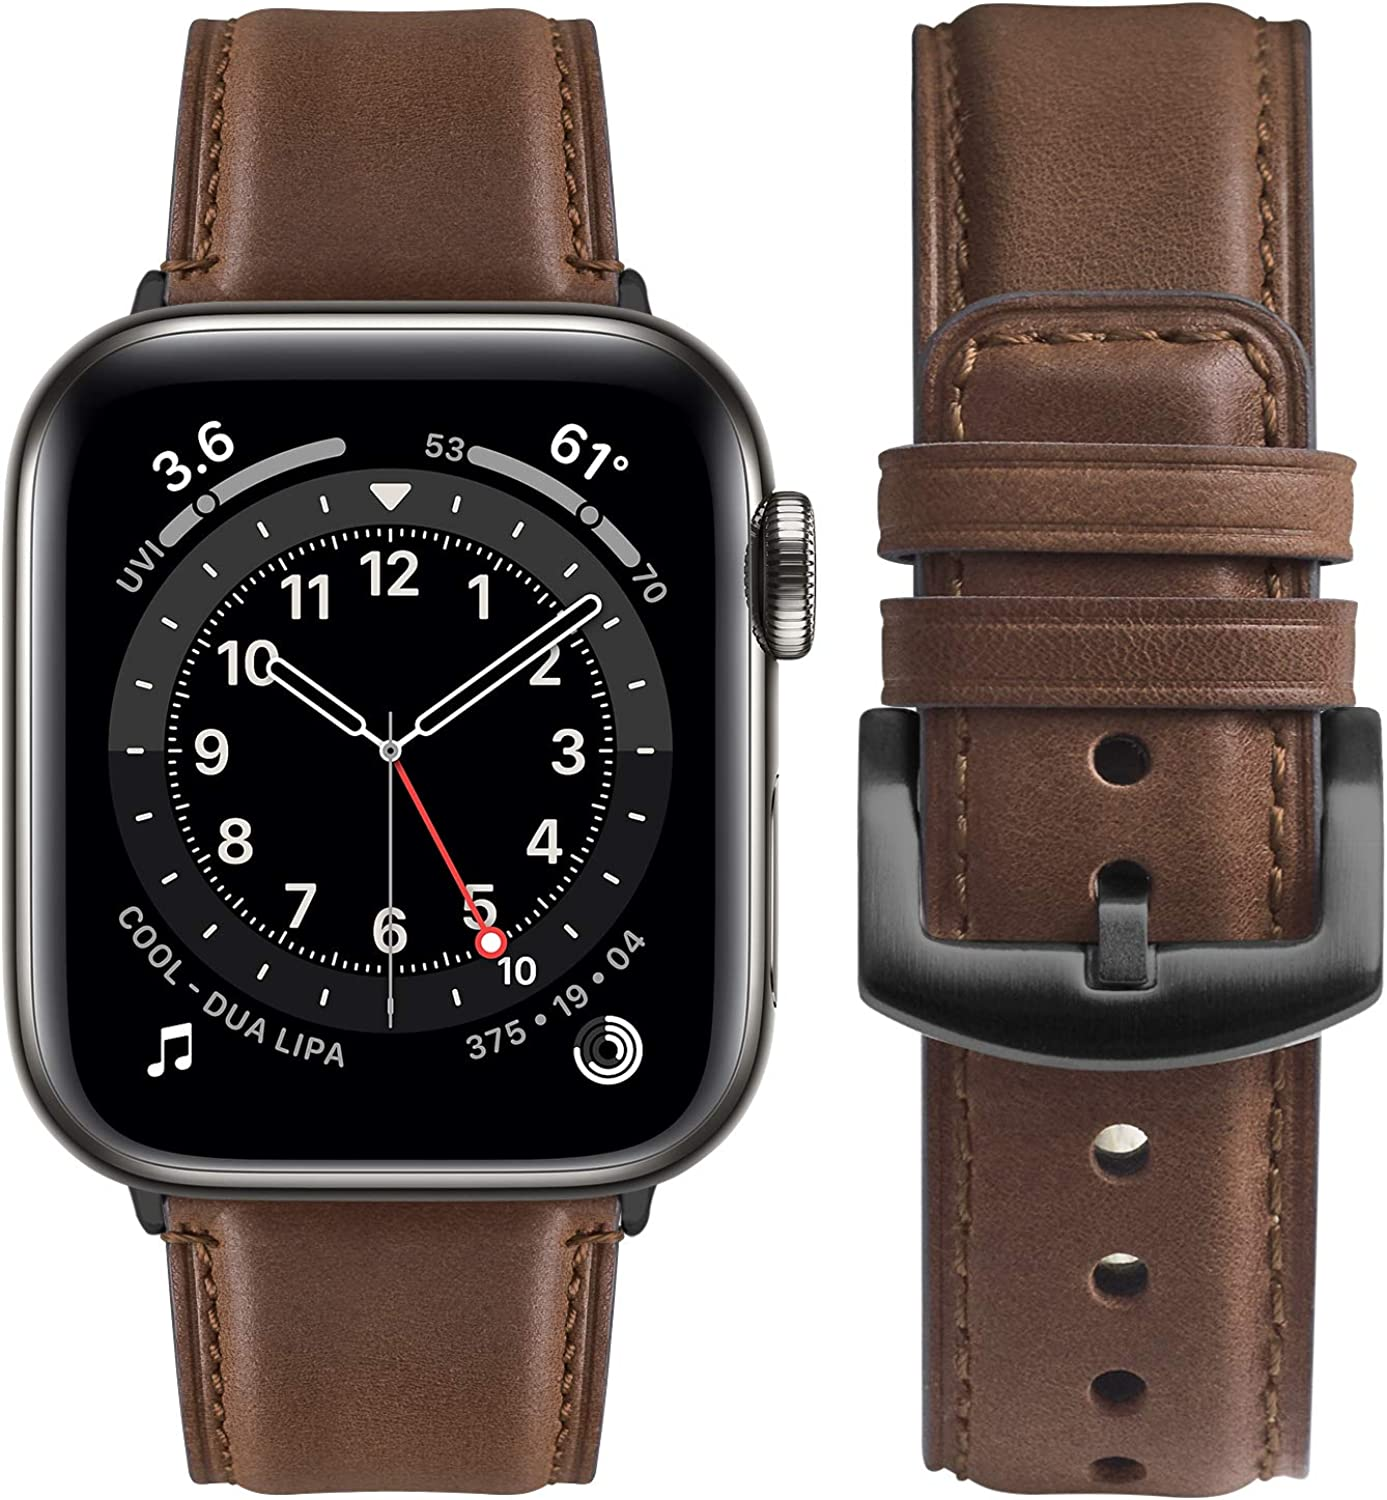 Fullmosa Compatible for iWatch 38mm 40mm 42mm 44mm, Yola Leather Watch Band for iWatch Series SE/6/5/4/3/2/1, Nike+, Edition, Sport